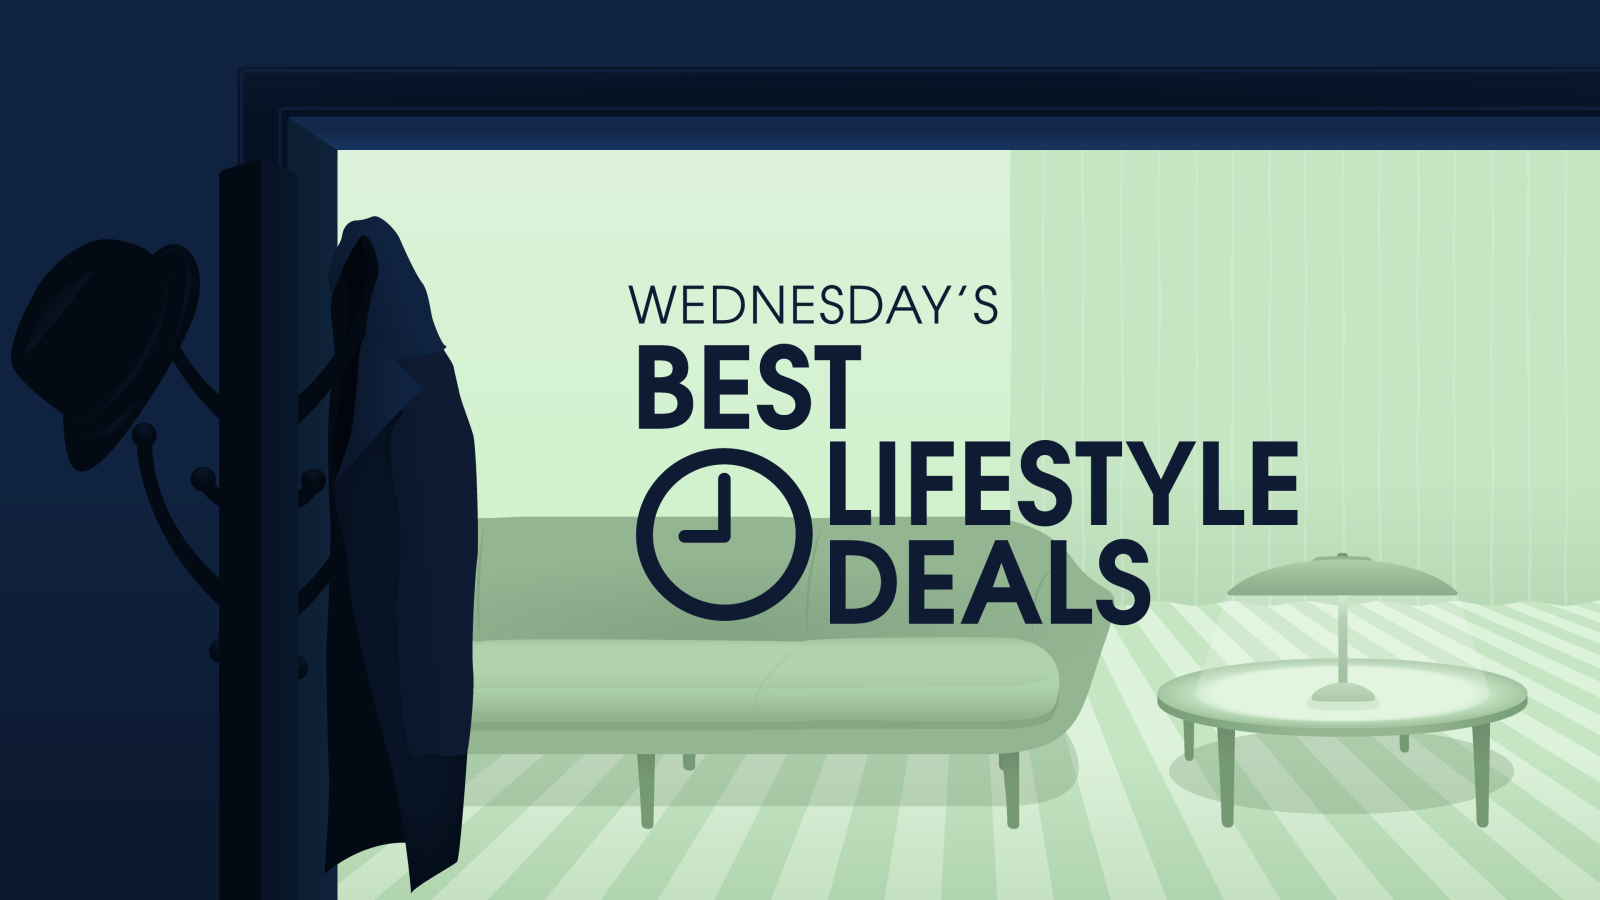 Wednesday's Best Lifestyle Deals: Clarks Private Sale, Vineyard Vines, Vitamix, more